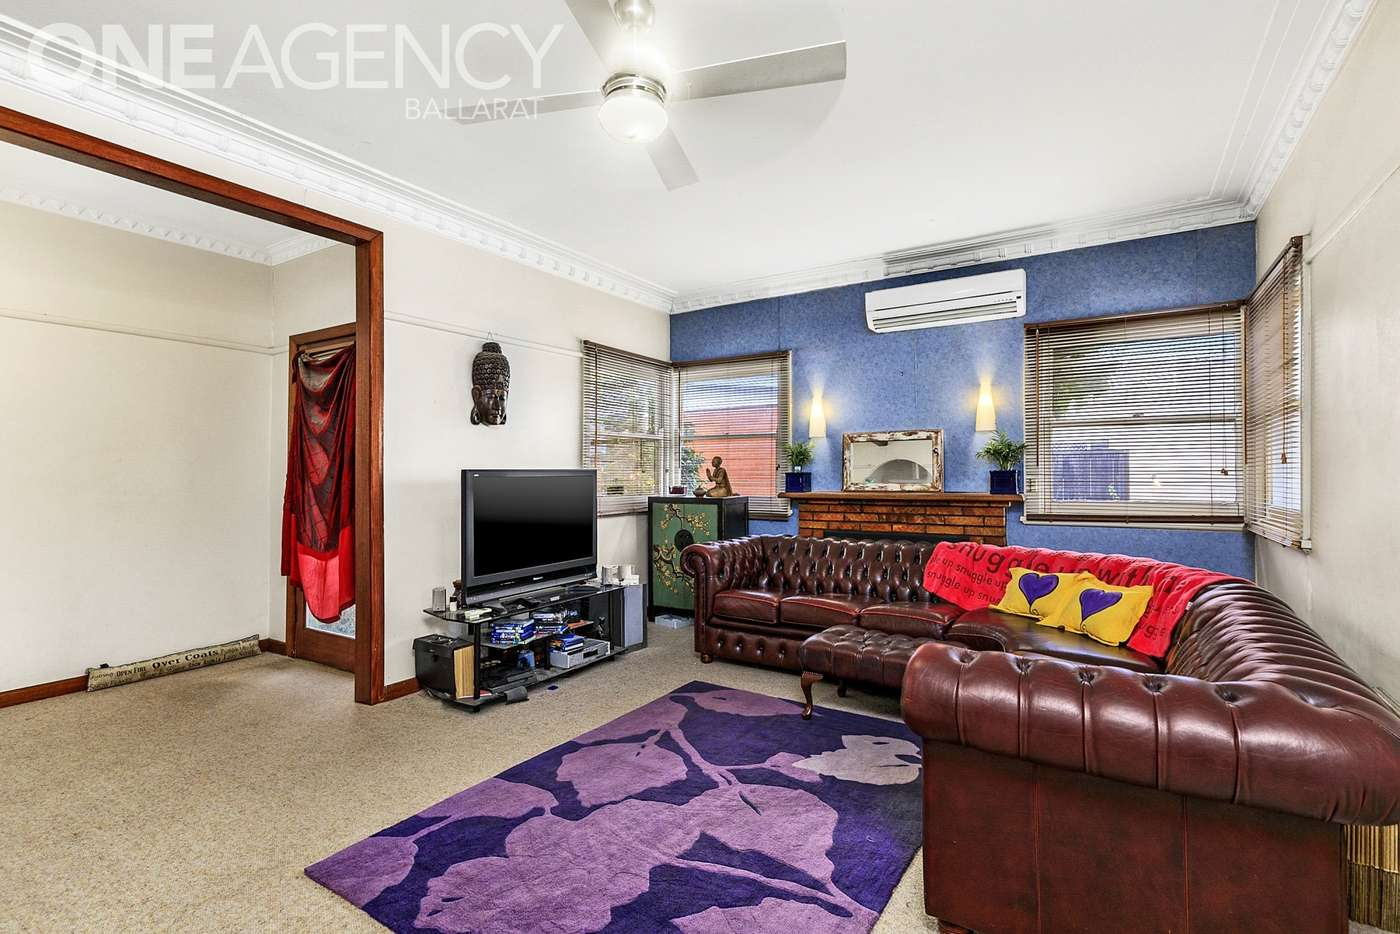 Fifth view of Homely house listing, 515 Norman Street, Ballarat North VIC 3350